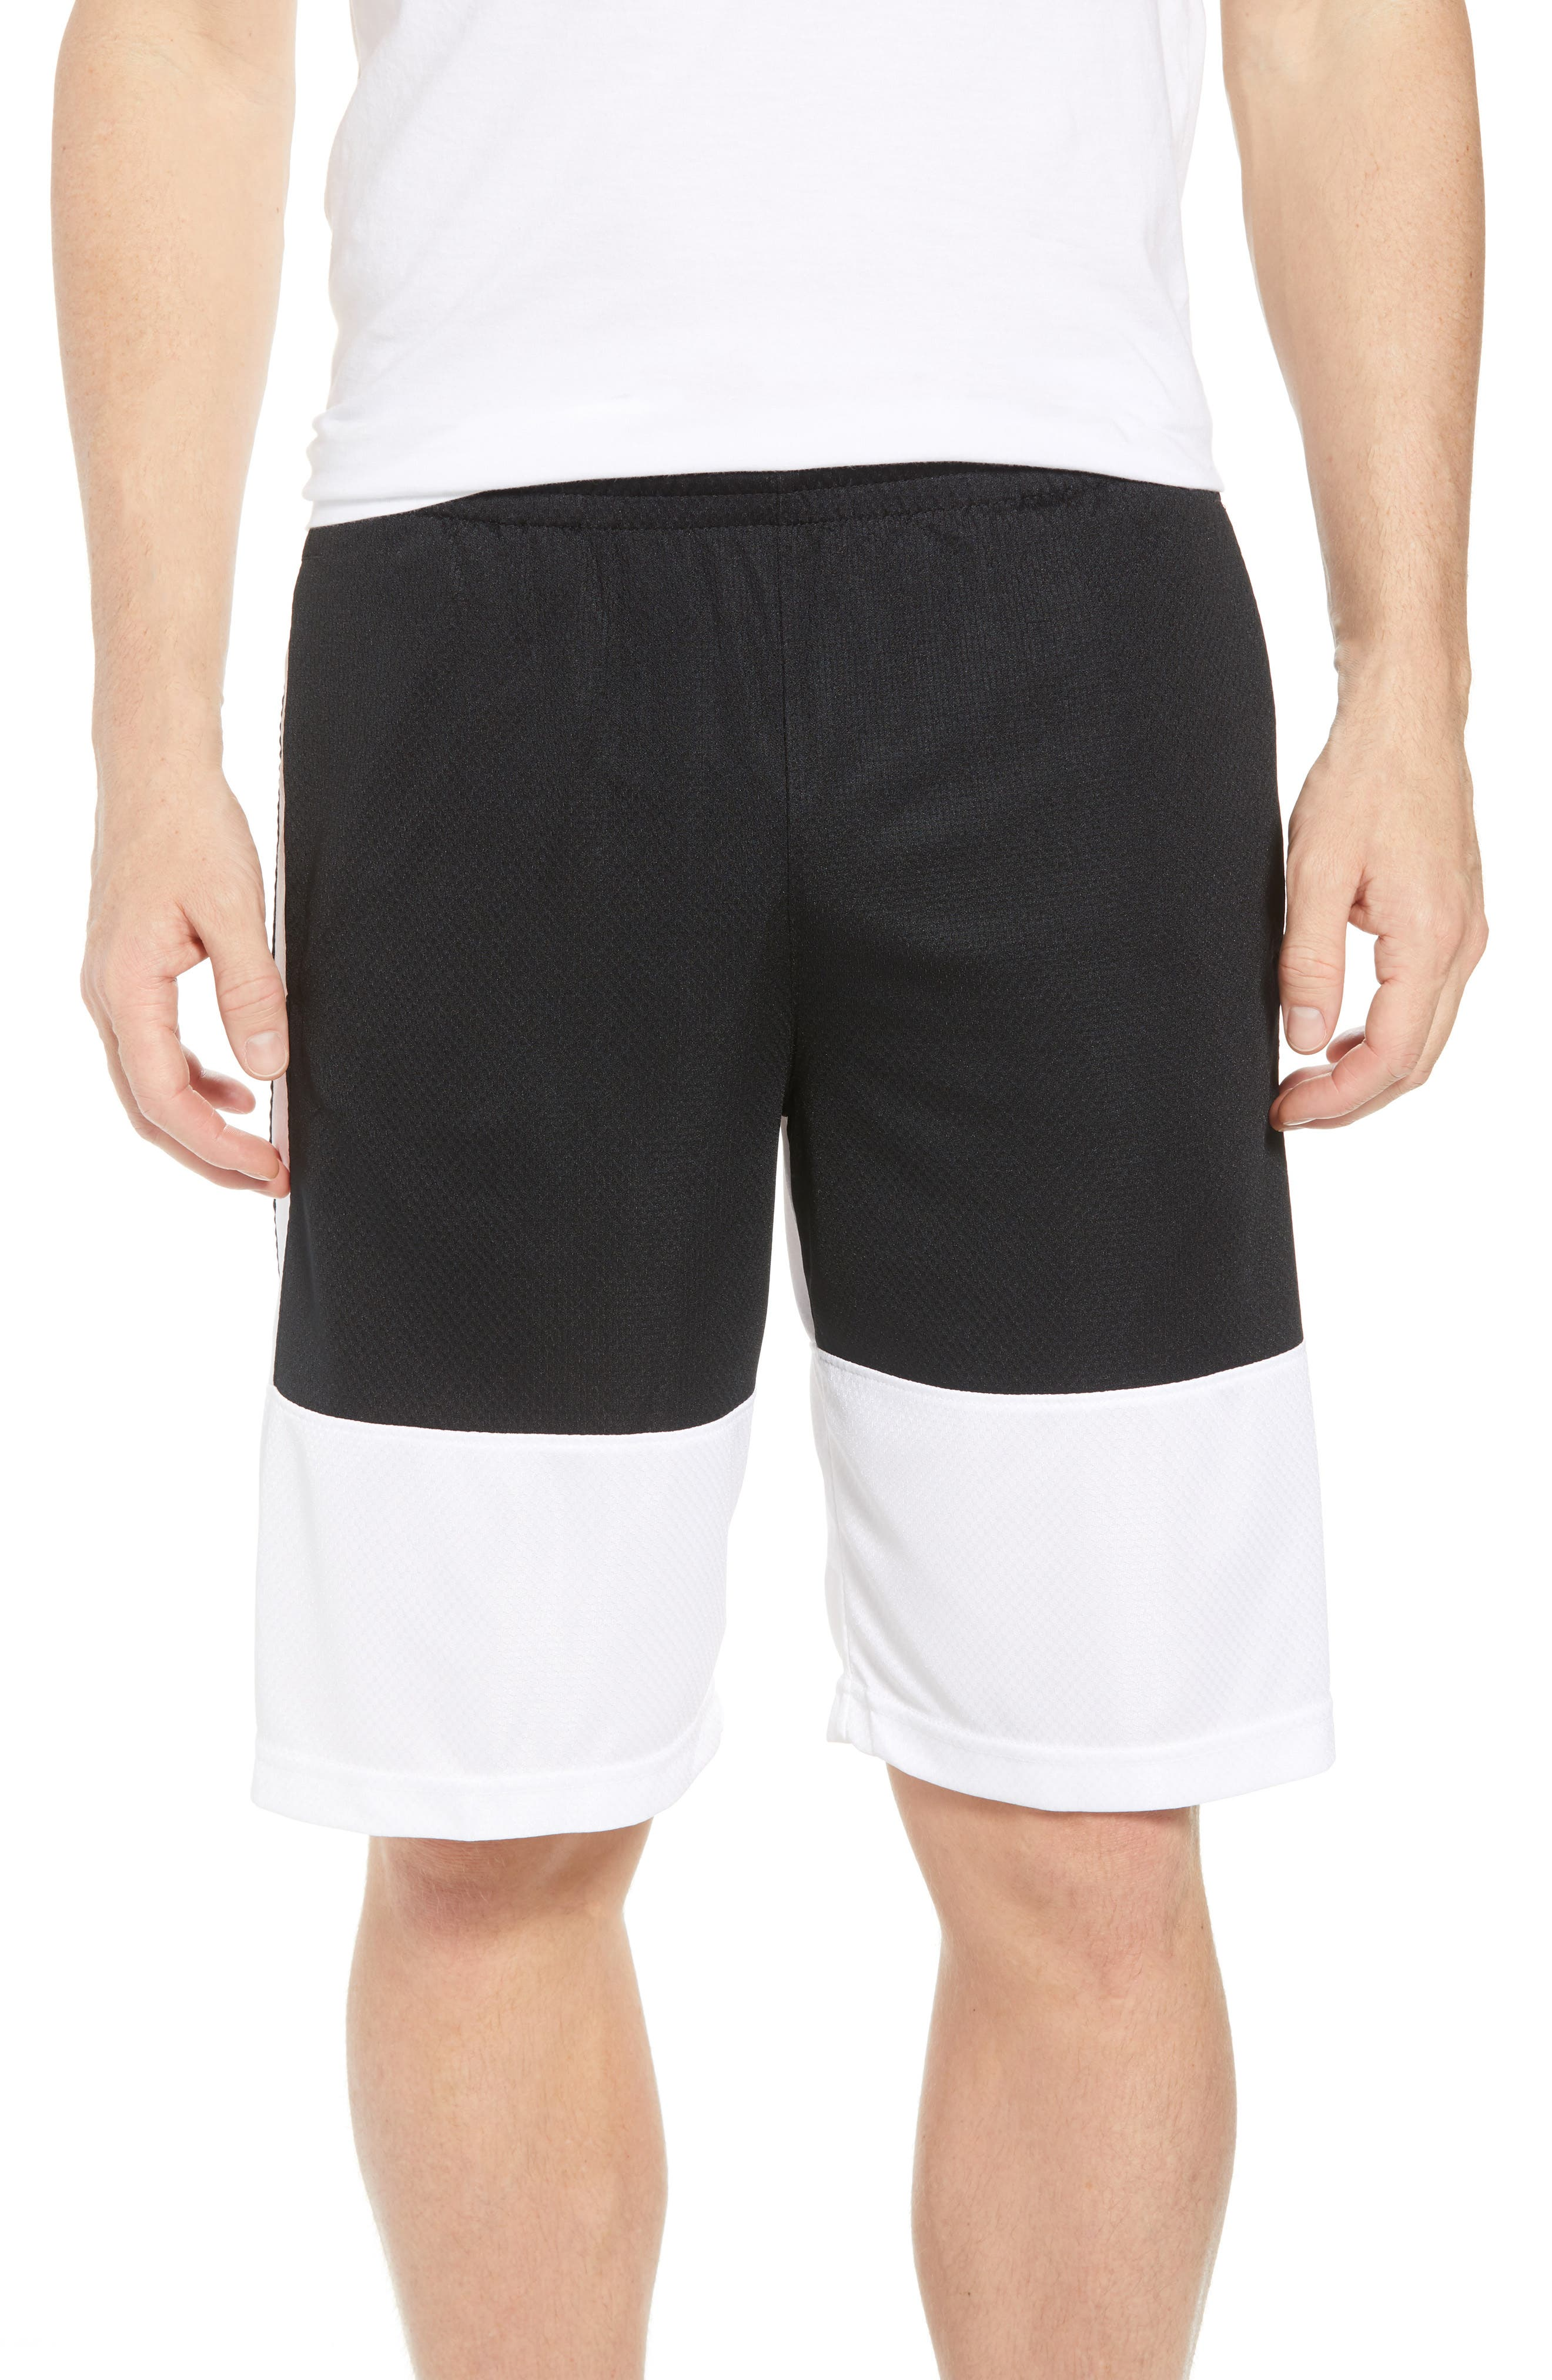 Rise Shorts,                         Main,                         color, WHITE/ BLACK/ BLACK